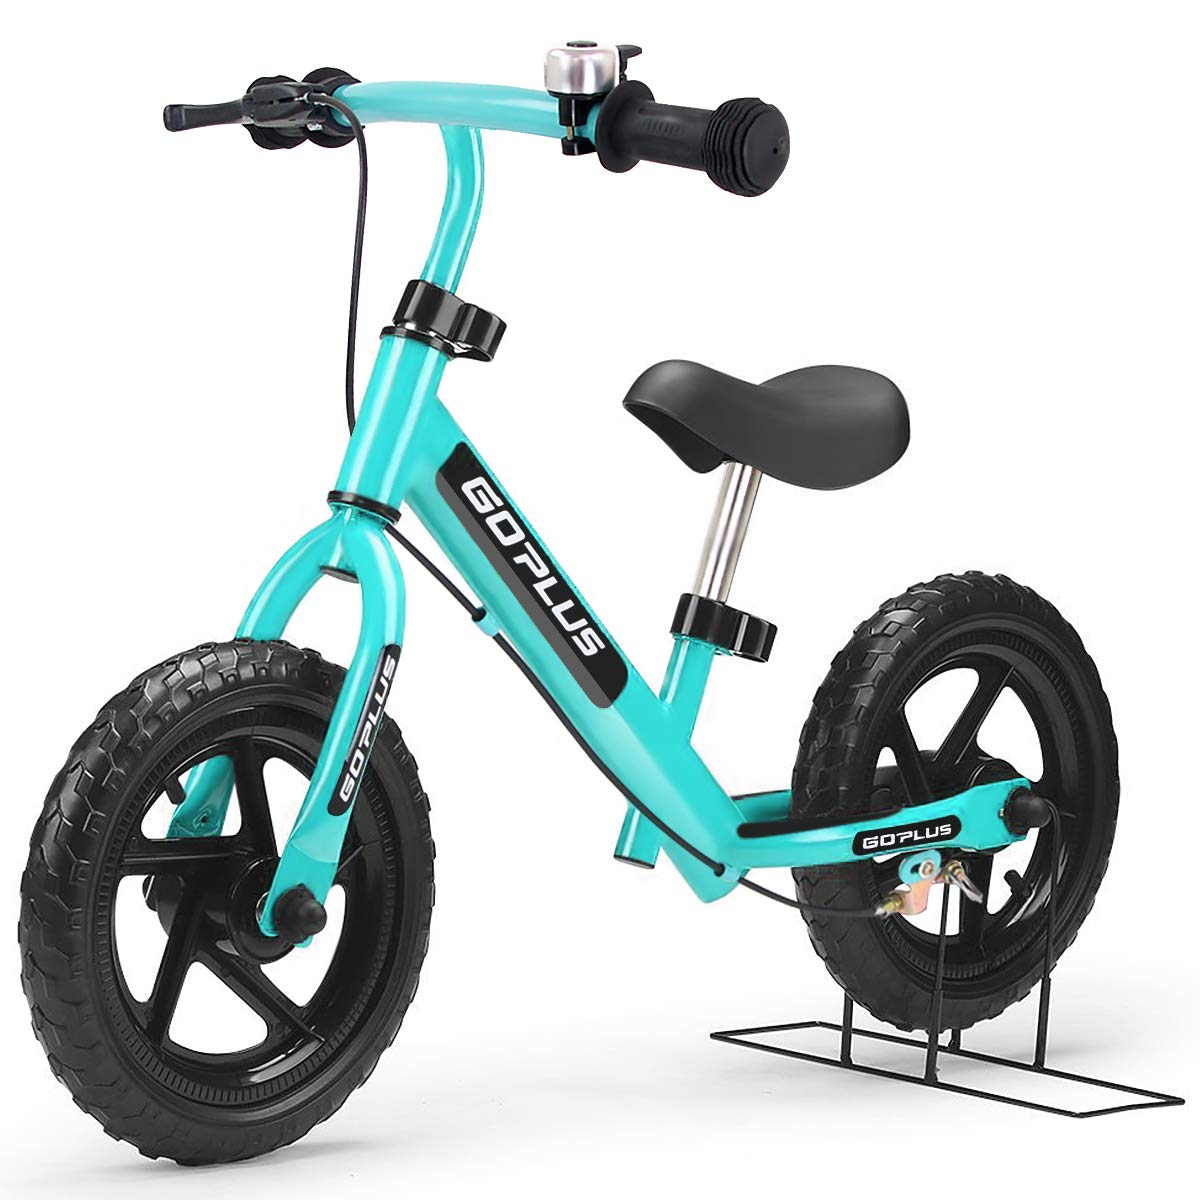 Goplus 12'' Kids Balance Bike No-Pedal Learn to Ride Pre Bike Push Walking Bicycle Adjustable Height with Bell Ring and Stand (Light Blue)